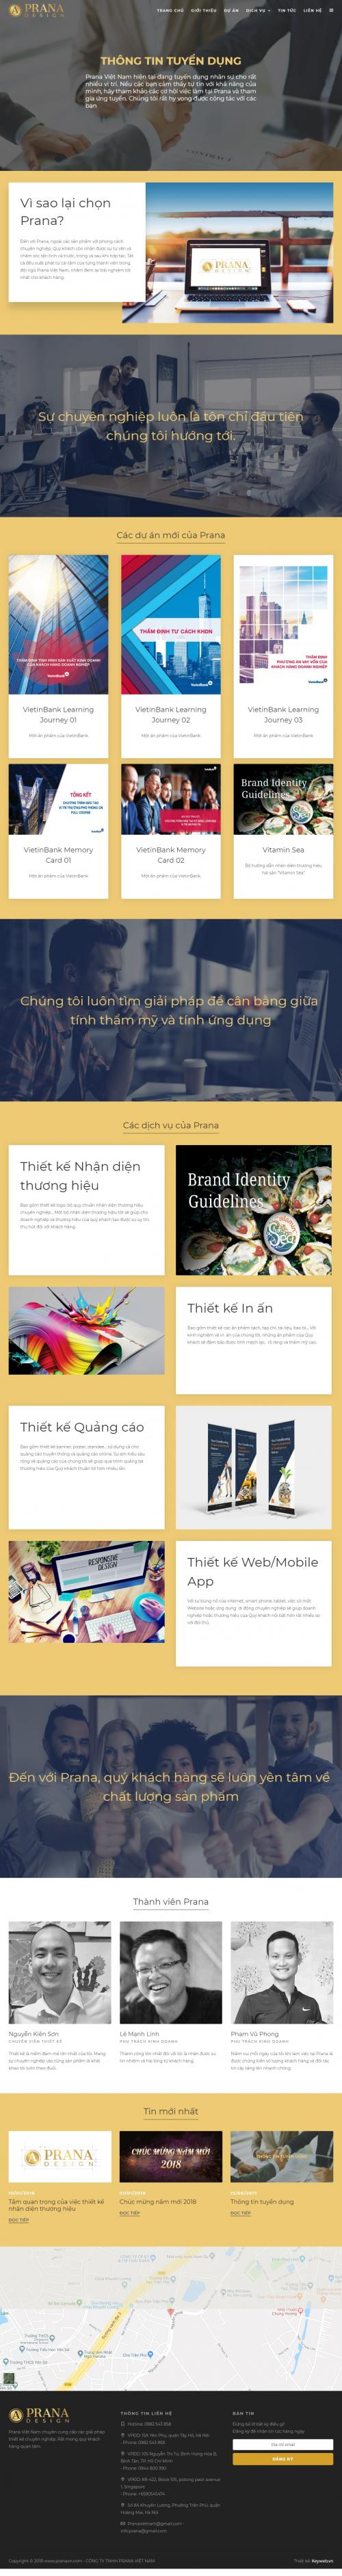 Thiết kế website doanh nghiệp xây dựng